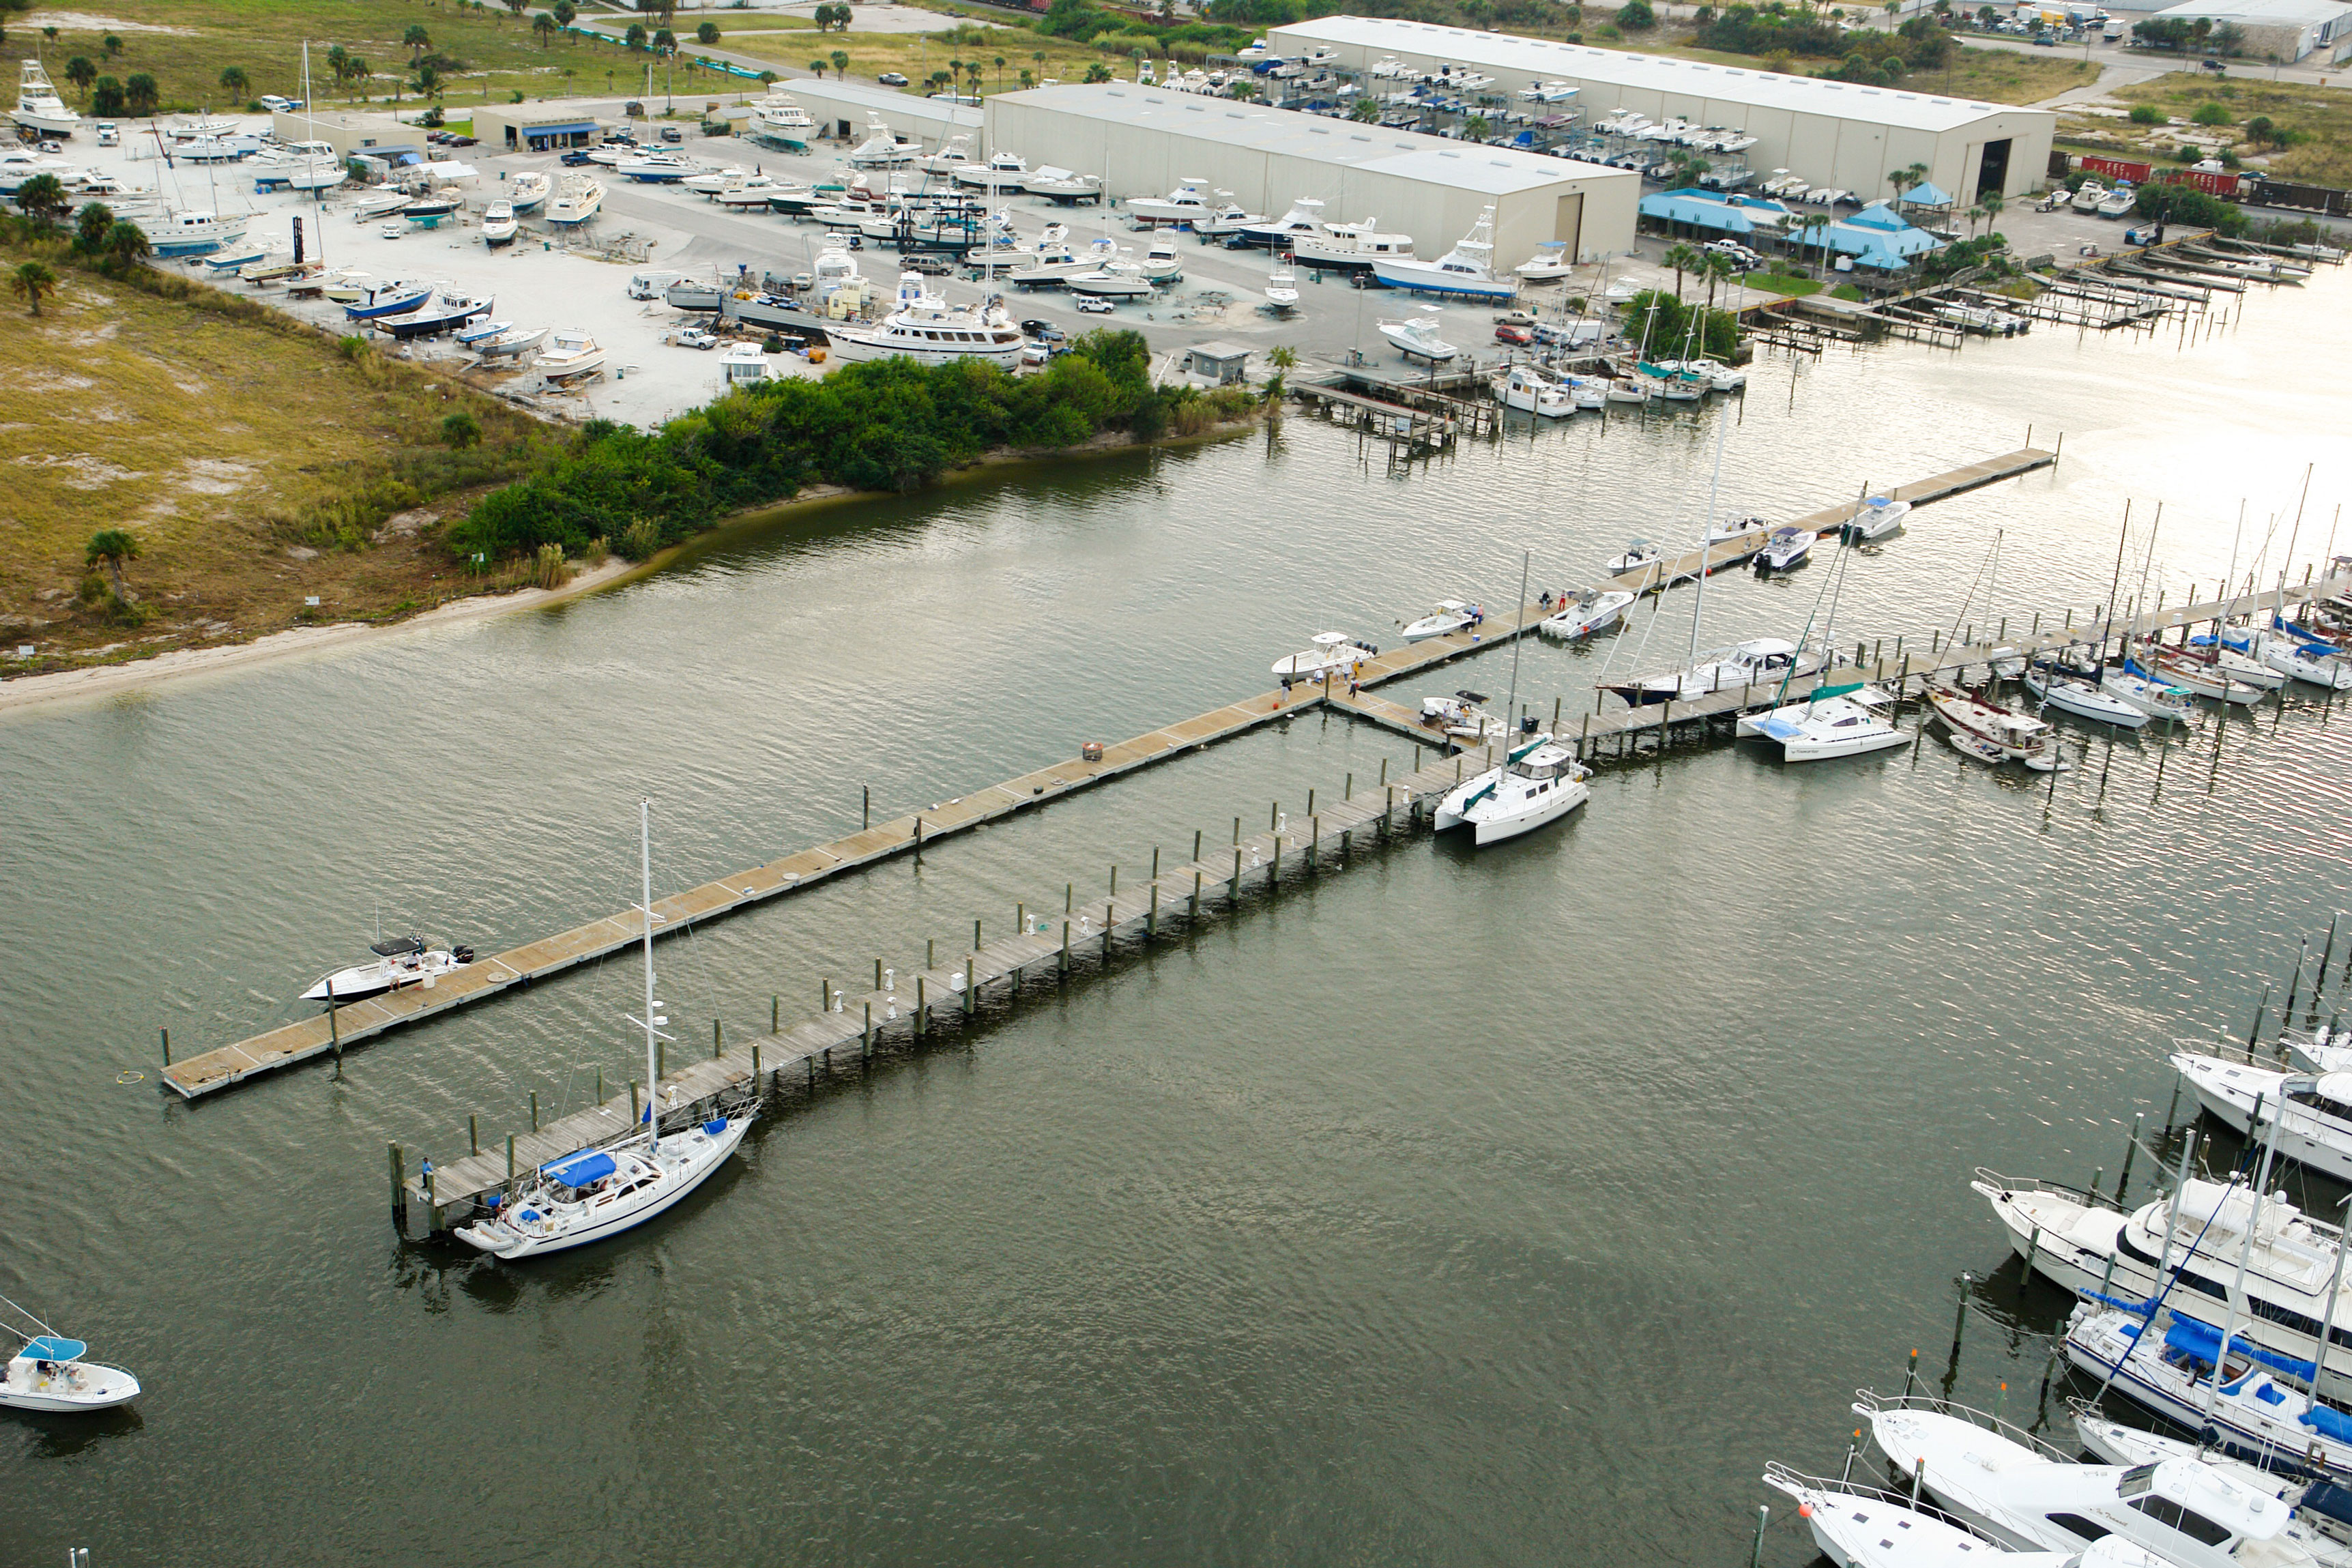 SKA Fishing Tournament Floating Docks - Aerial side shot - Allsports Productions